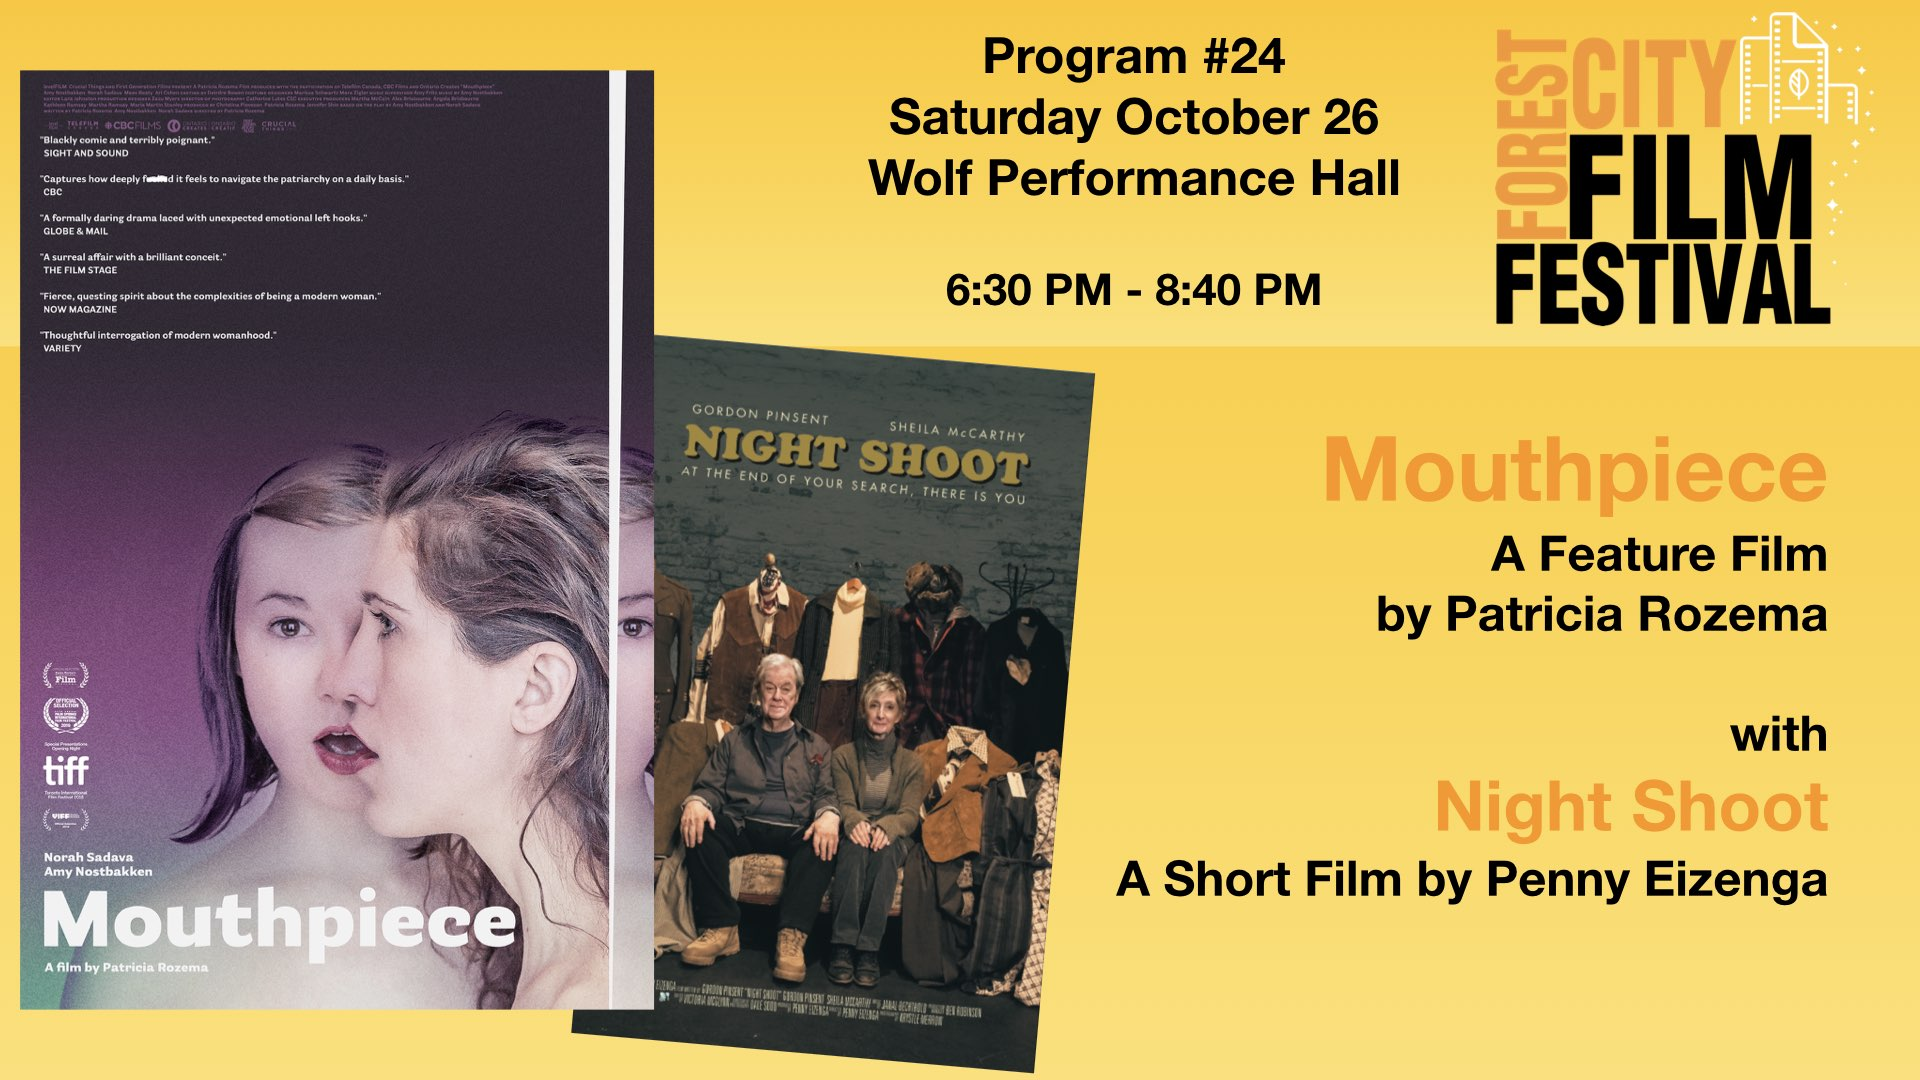 FCFF 2019 - Saturday night at Wolf Program #24 - Mouthpiece with Night Shoot